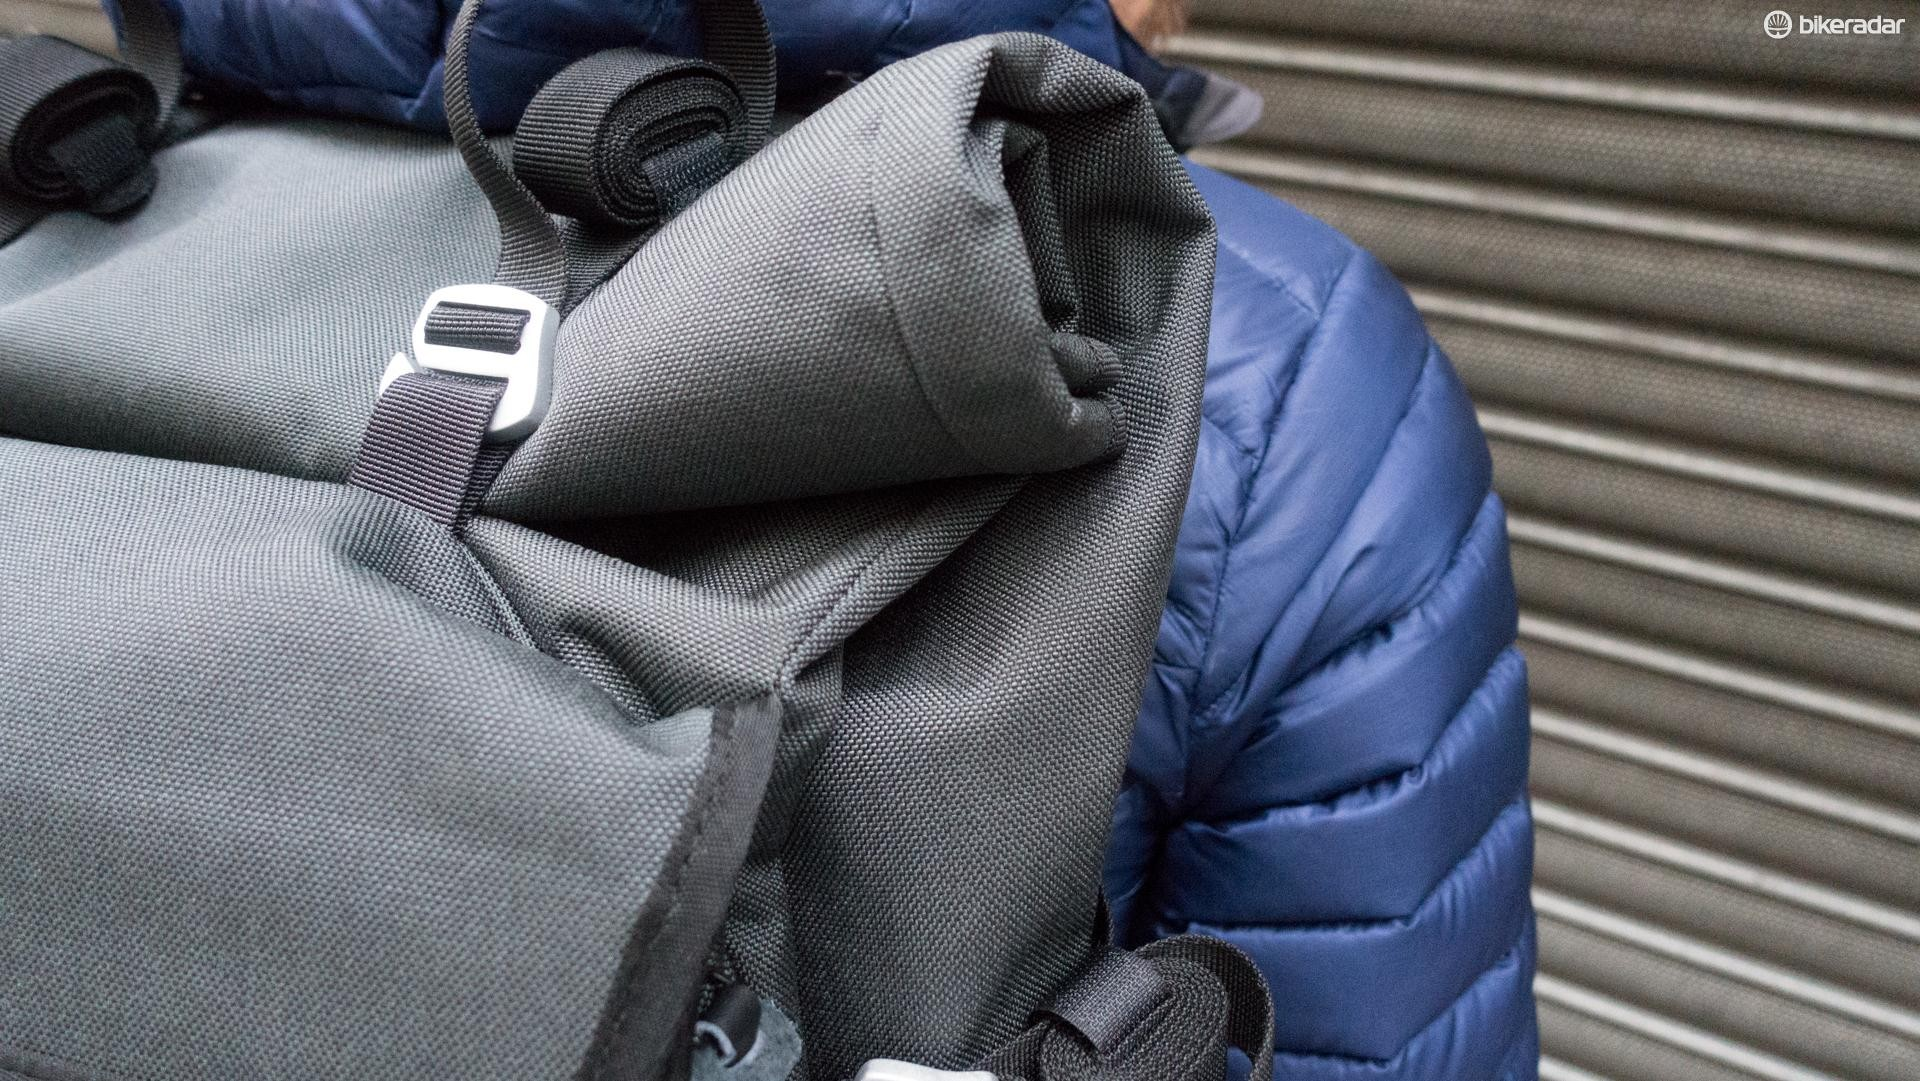 Compression straps hold the roll top design down, but an additional four straps on the side allow for creative carrying configurations